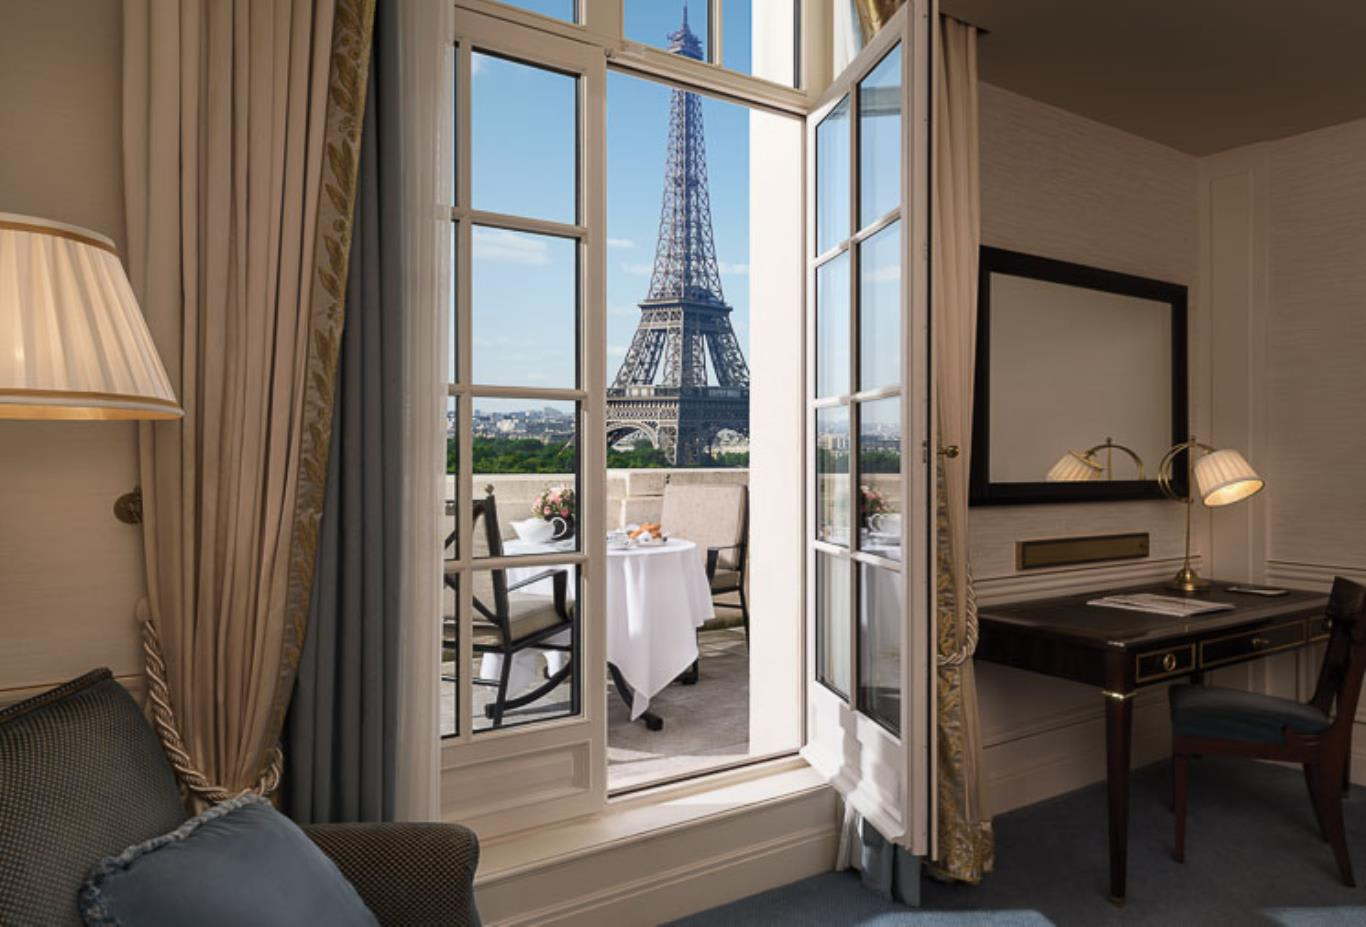 Terrace Eiffel Tower View Room